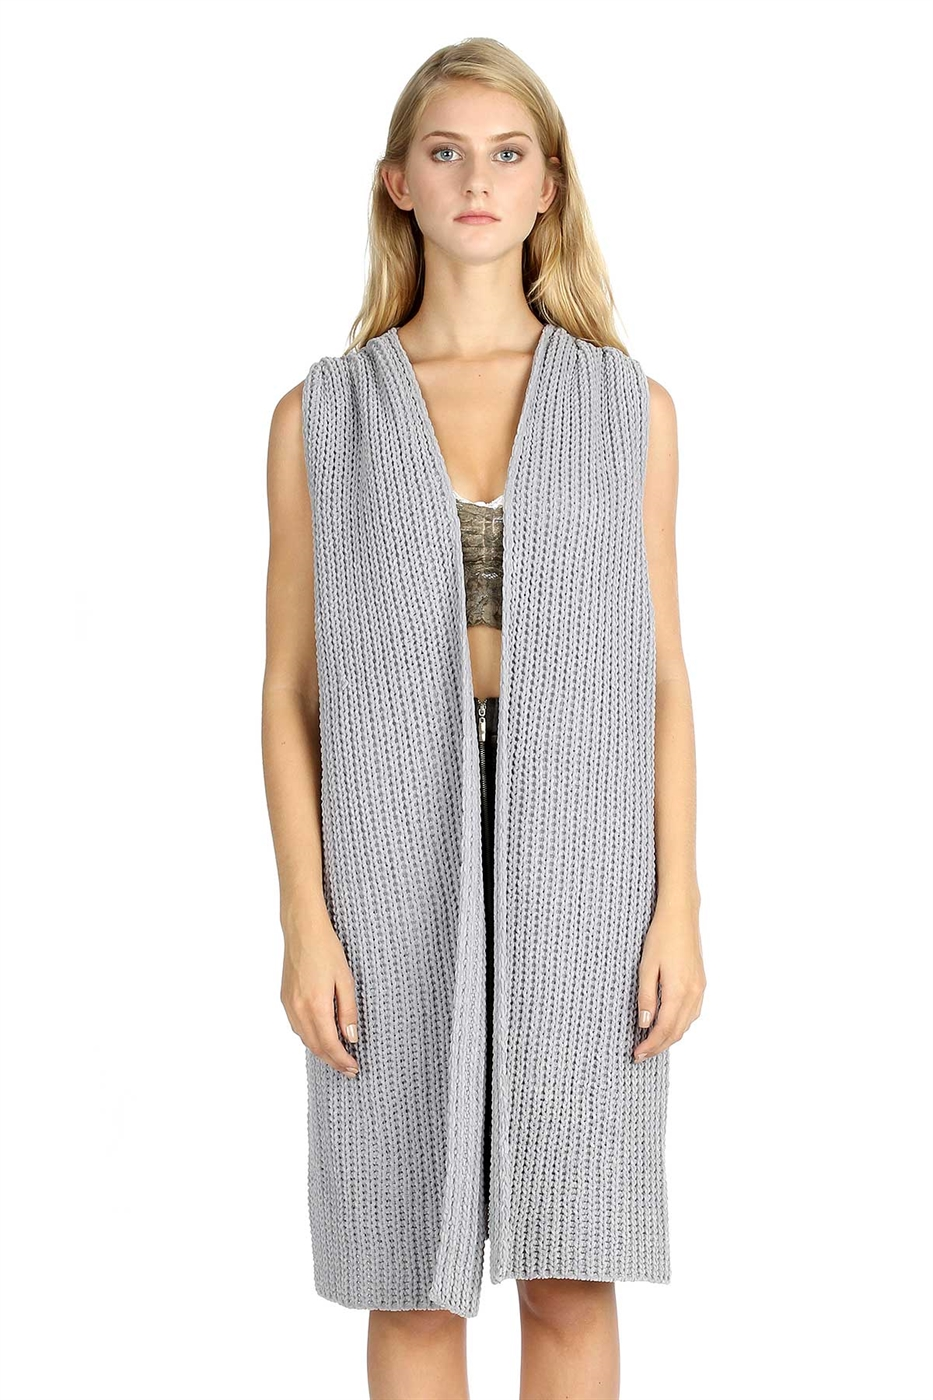 Coverable knit vest top - orangeshine.com